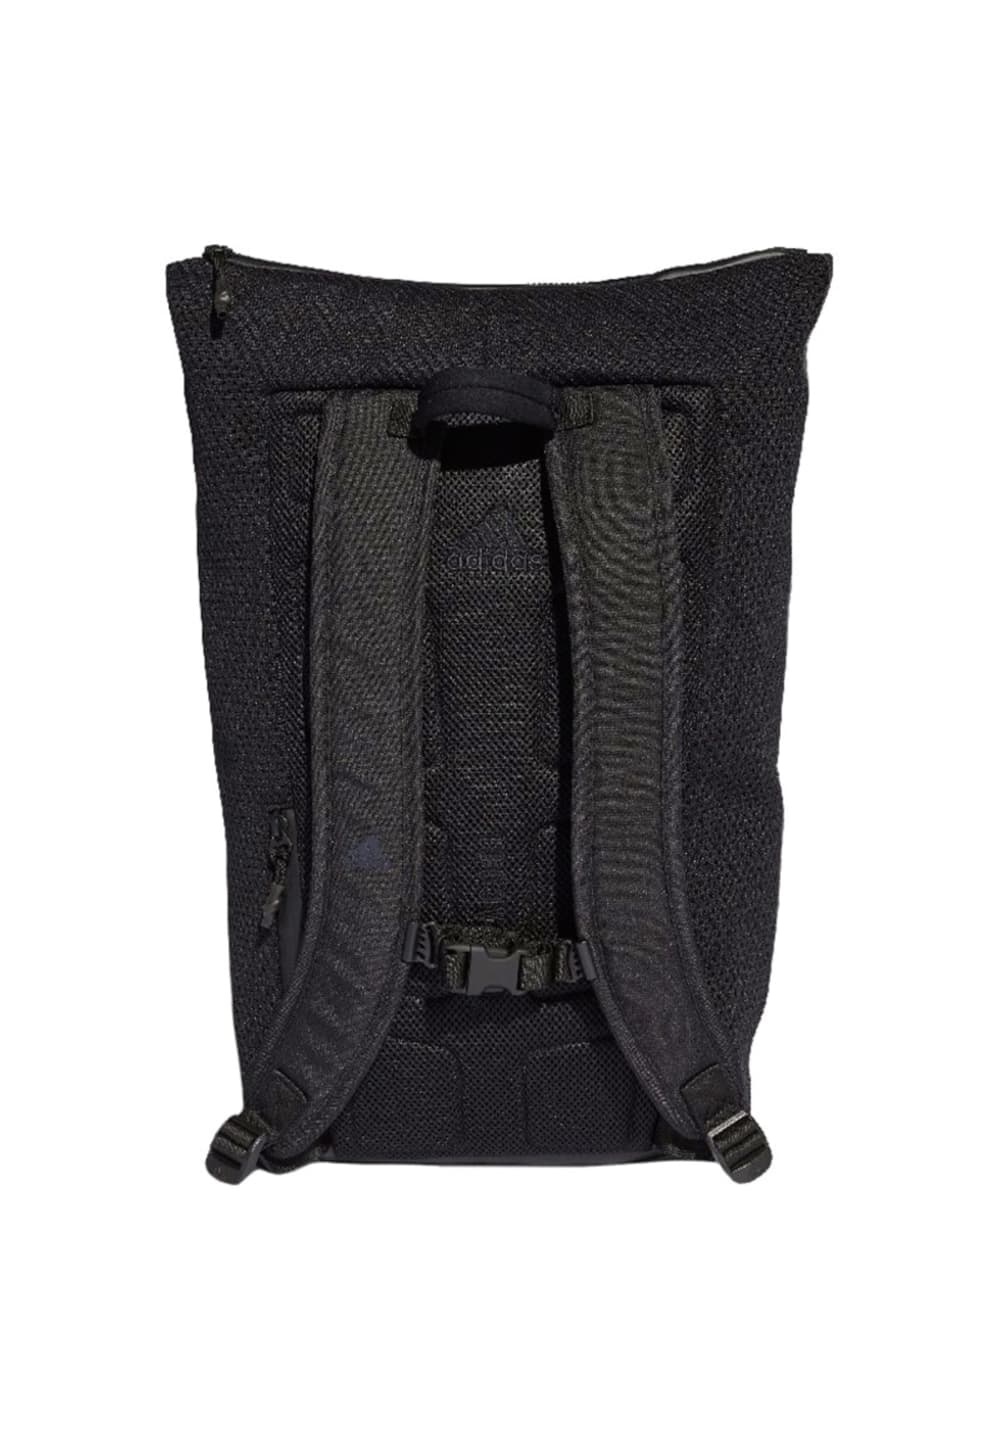 b84d518893f8 ... adidas Z.N.E. Parley Backpack - Backpacks for Men - Black. Back to  Overview. 1  2. Previous